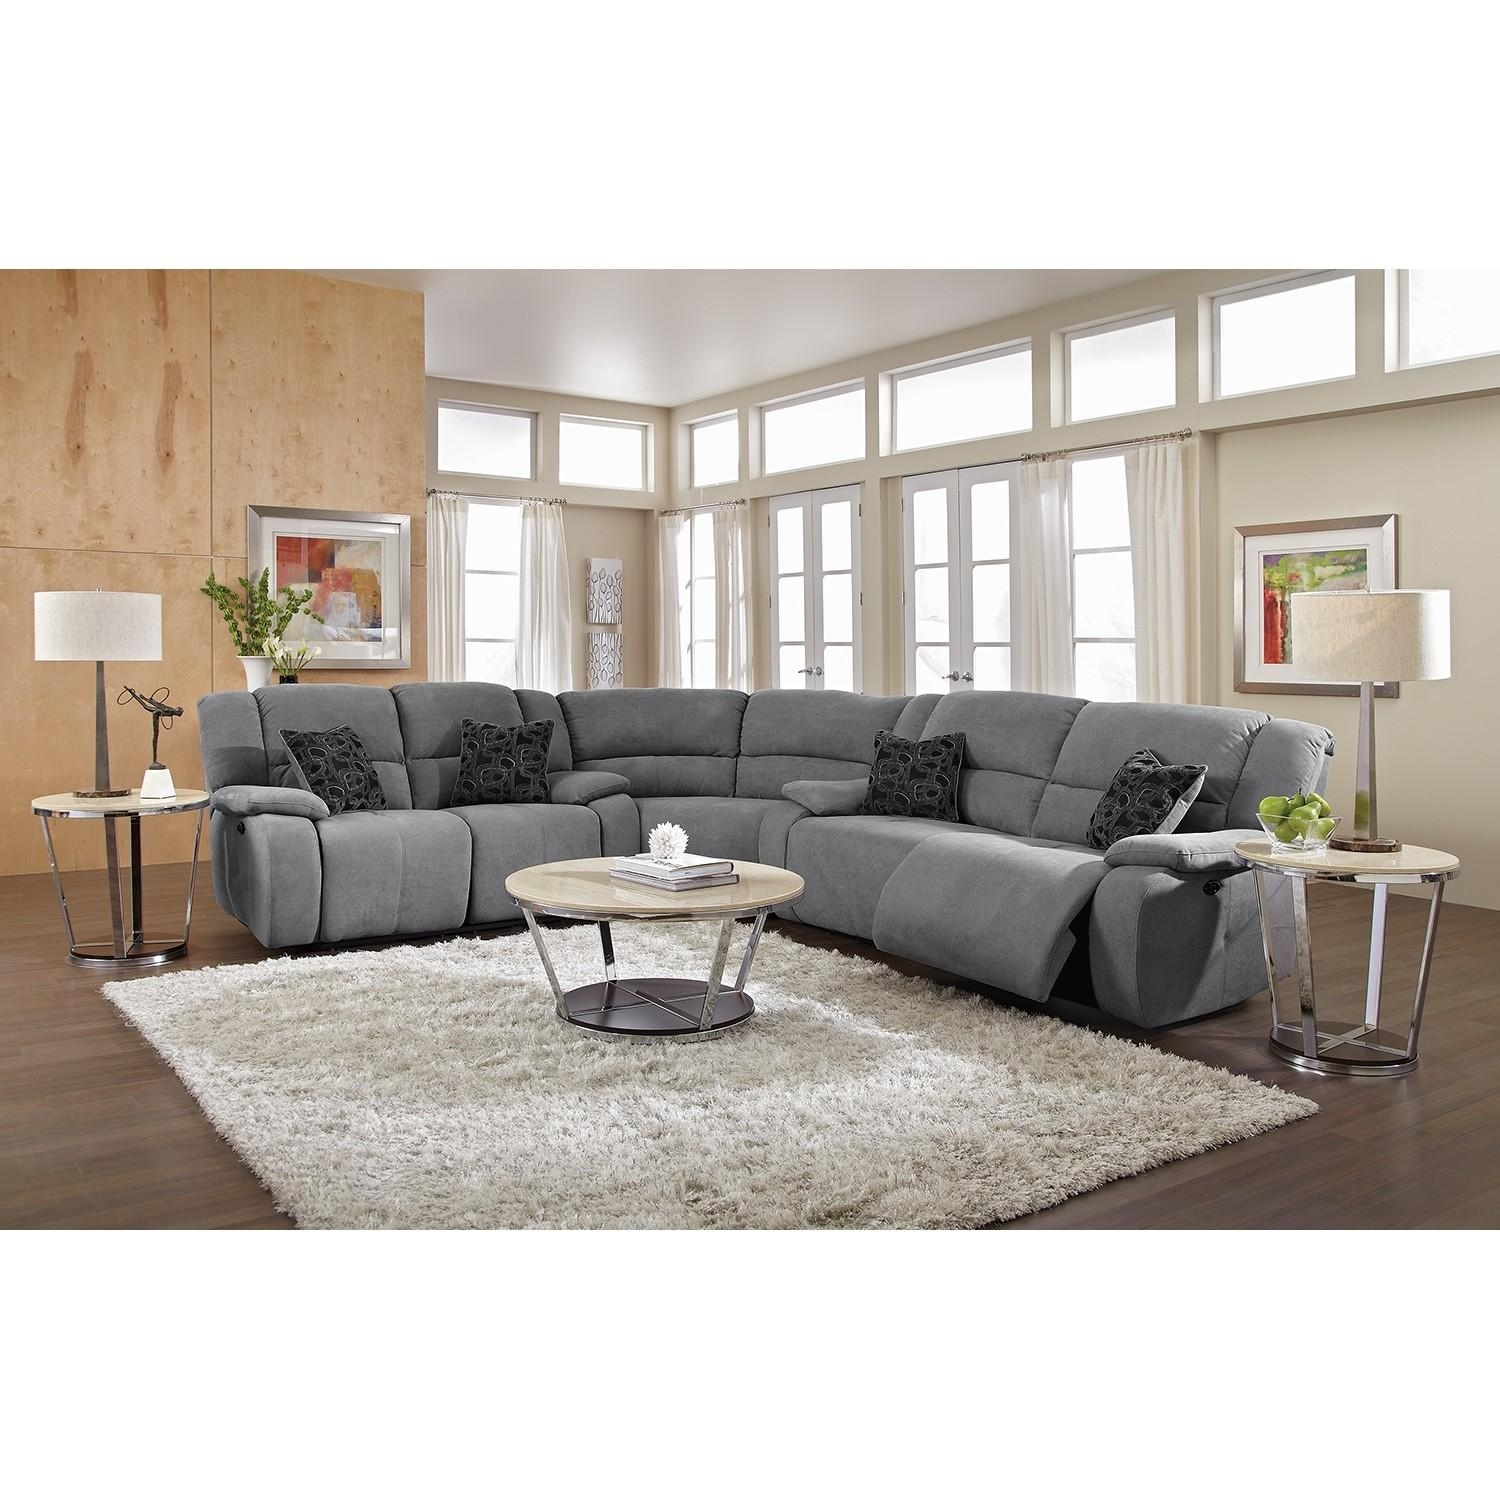 grey sofas leather sofa with legs or without 21 ideas of gray sectional